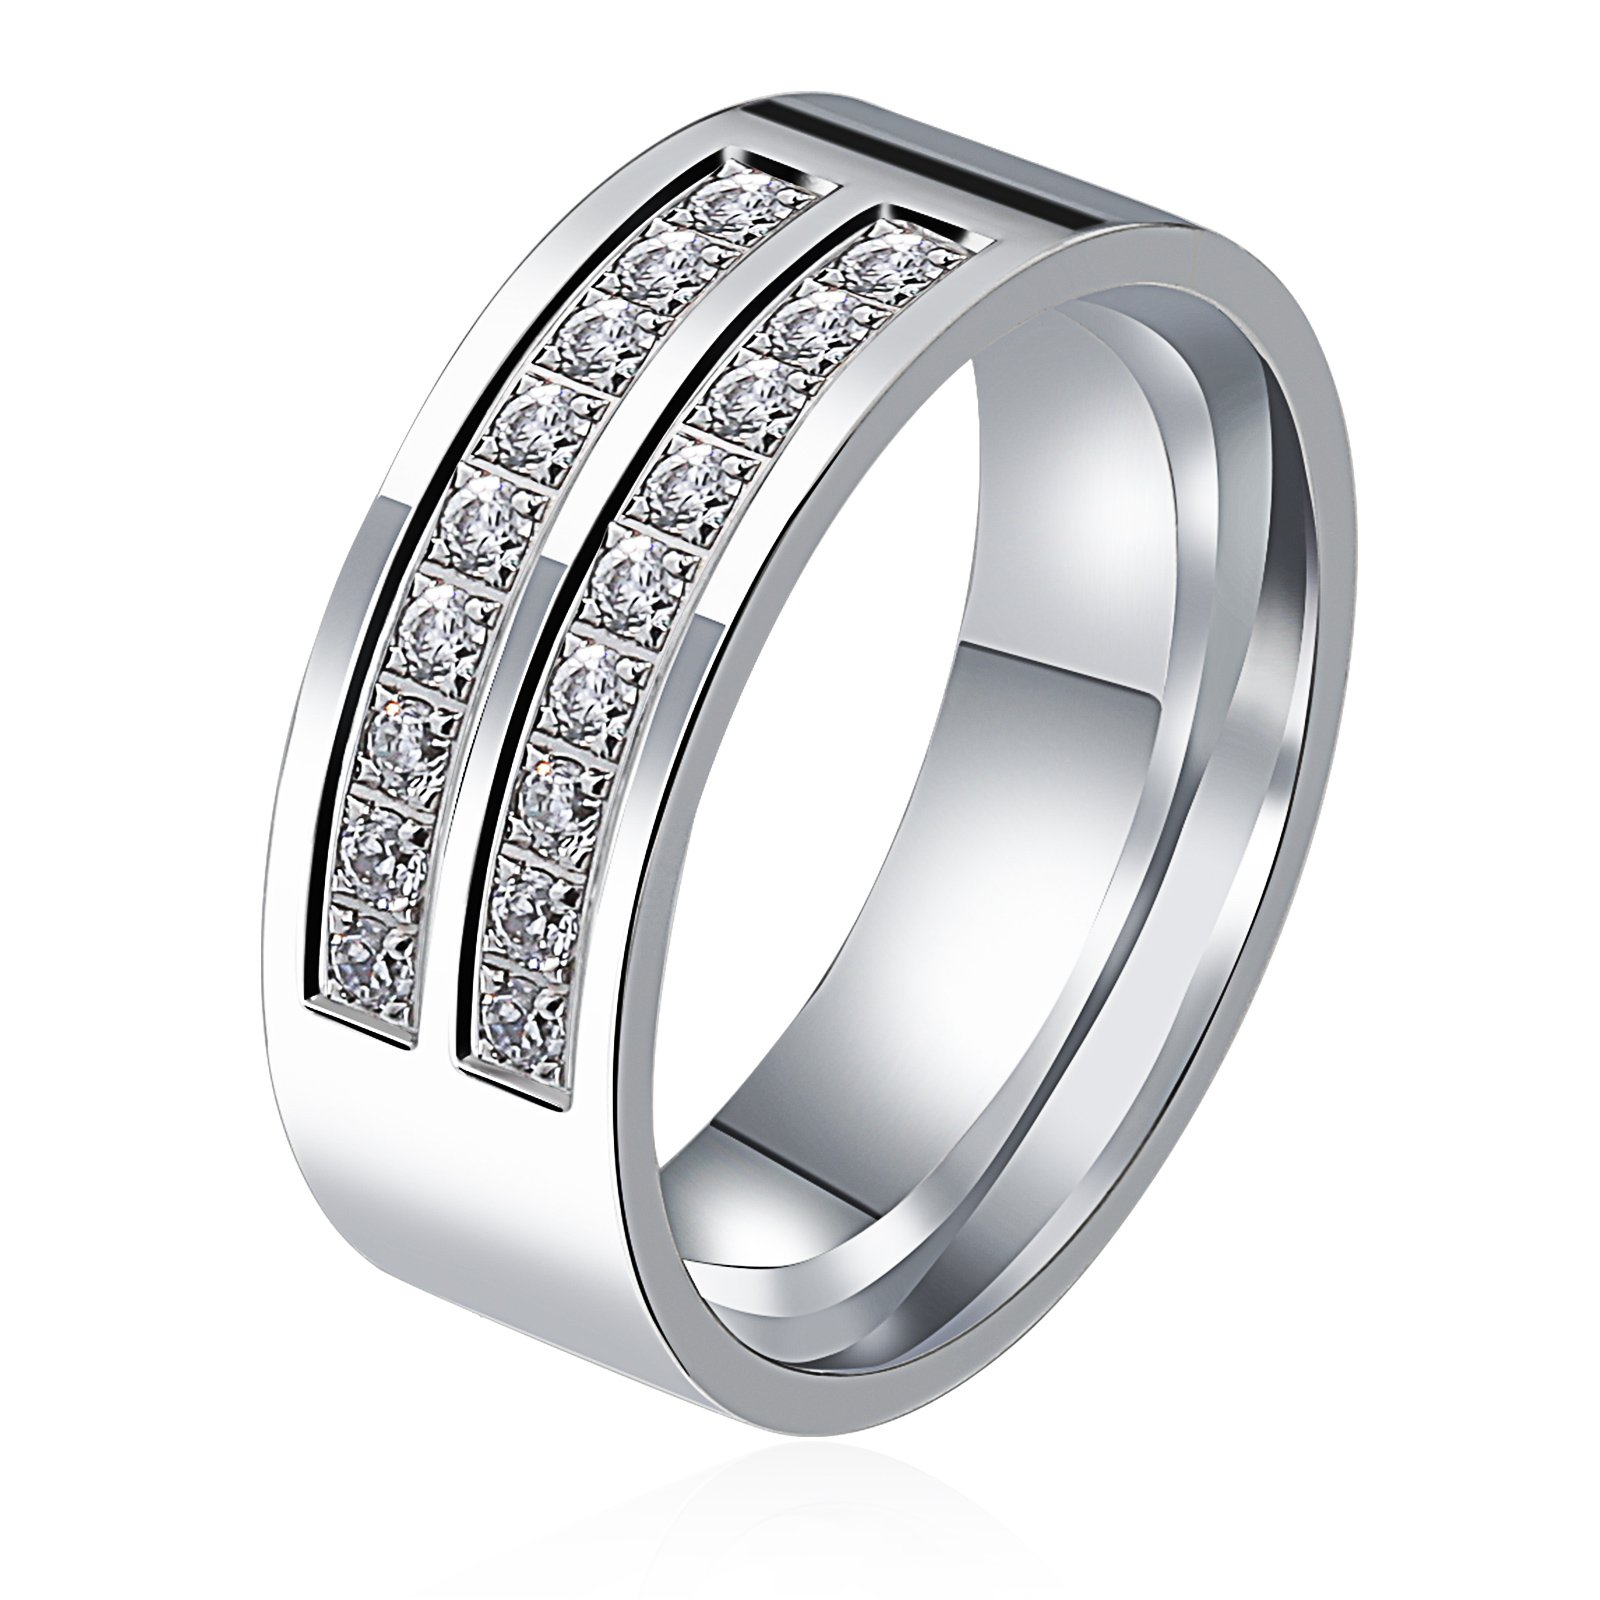 8MM Rings for Women Men Wedding Band Rings Stainless Steel Eternity with White Cubic Zirconia